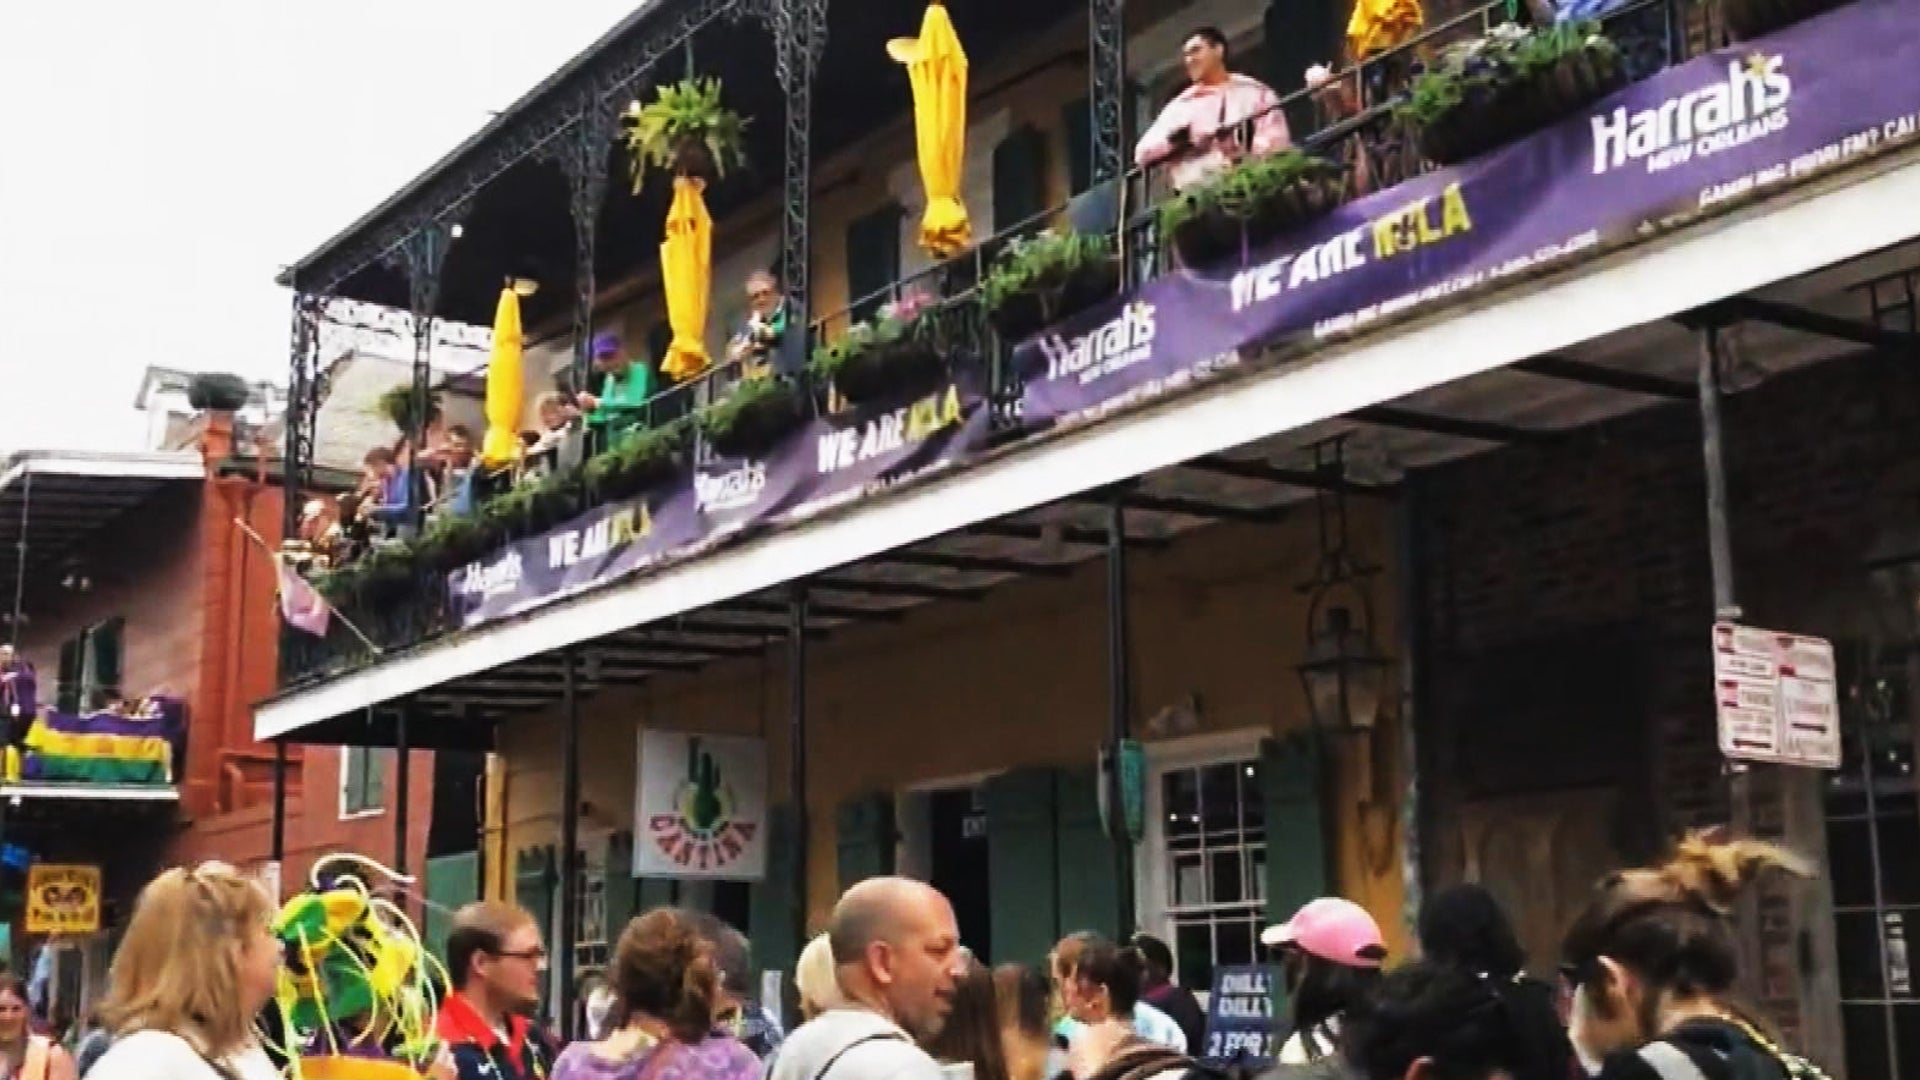 New Orleans Shuts Down French Quarter Until After Mardi Gras to Avoid Spread